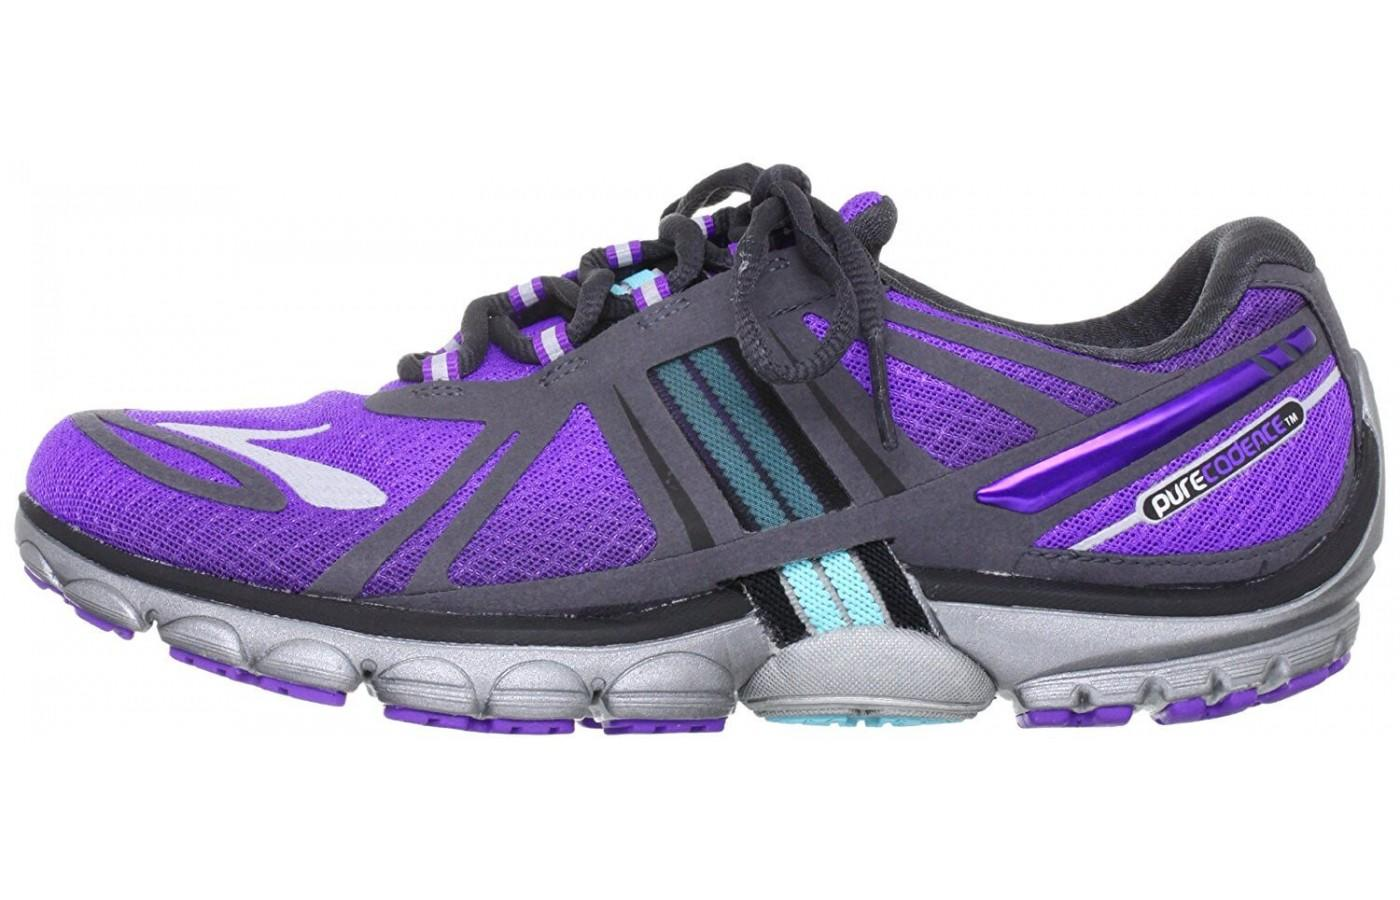 Brooks PureCadence 2 is a minimalist stability shoe